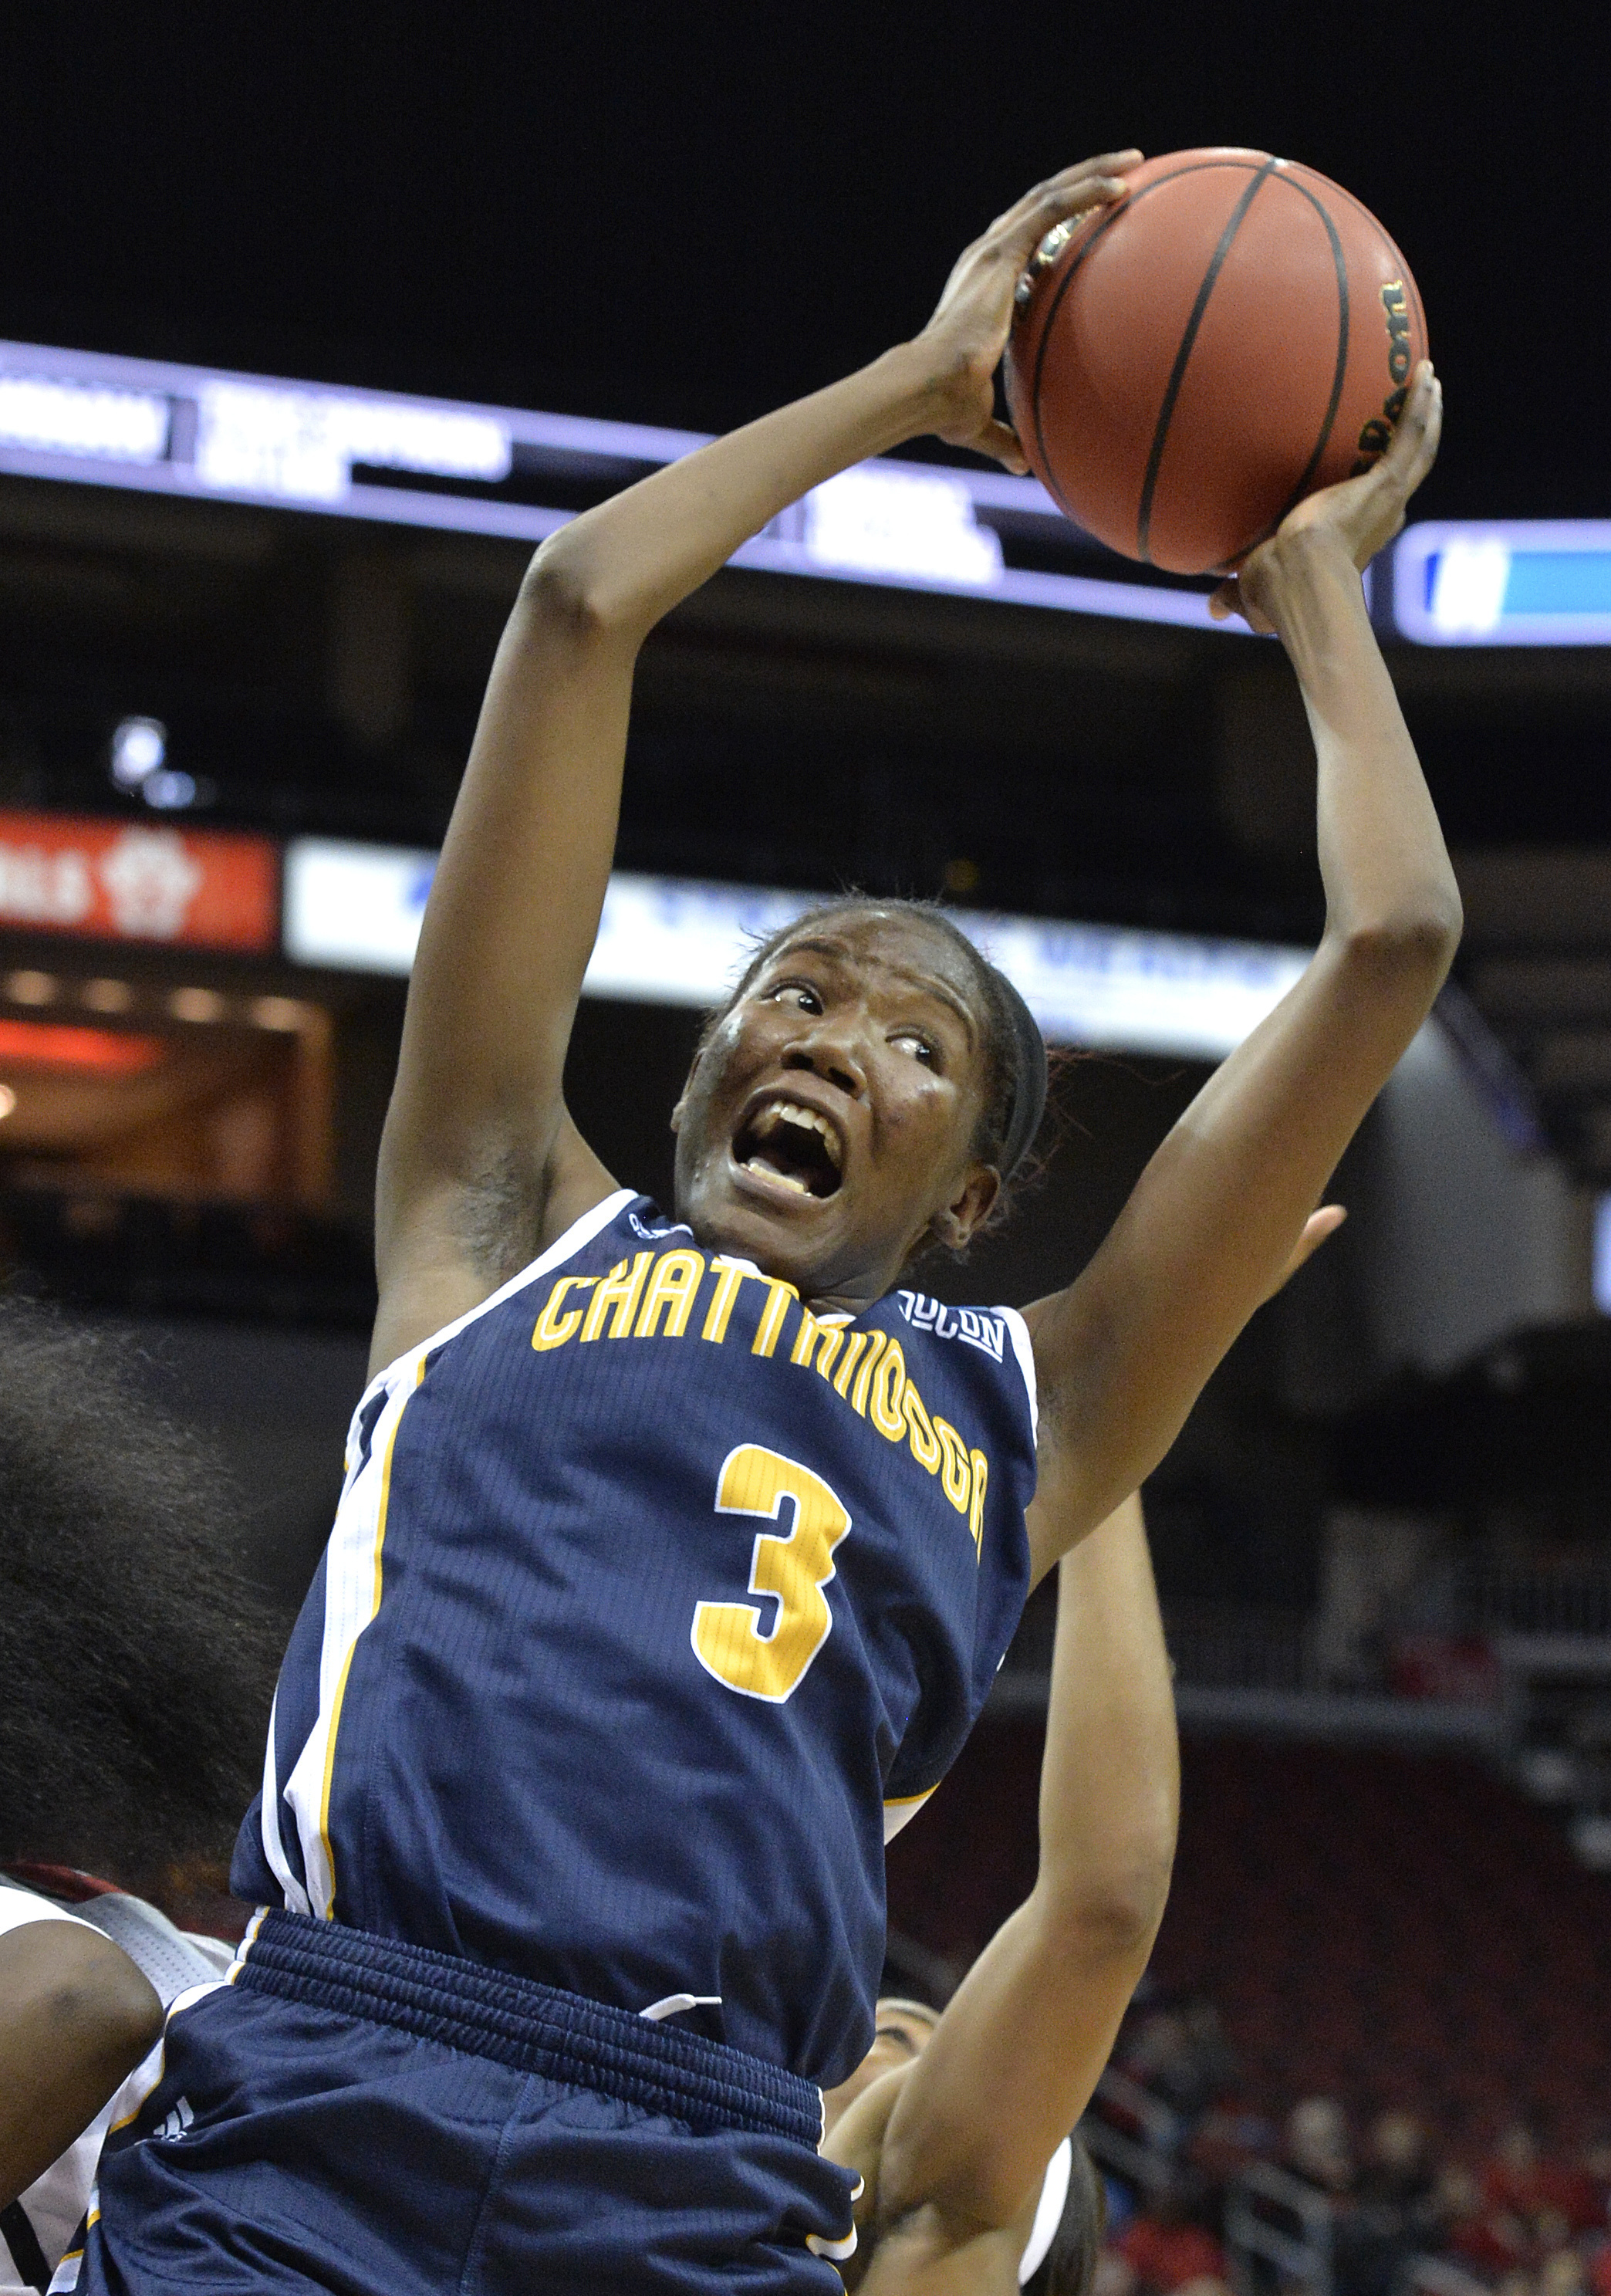 Chattanooga's Jasmine Joyner (3) pulls down a rebound in the first half of a first-round game in the women's NCAA college basketball tournament against Louisville, Saturday, Mar. 18, 2017, in Louisville, Ky. (AP Photo/Timothy D. Easley)